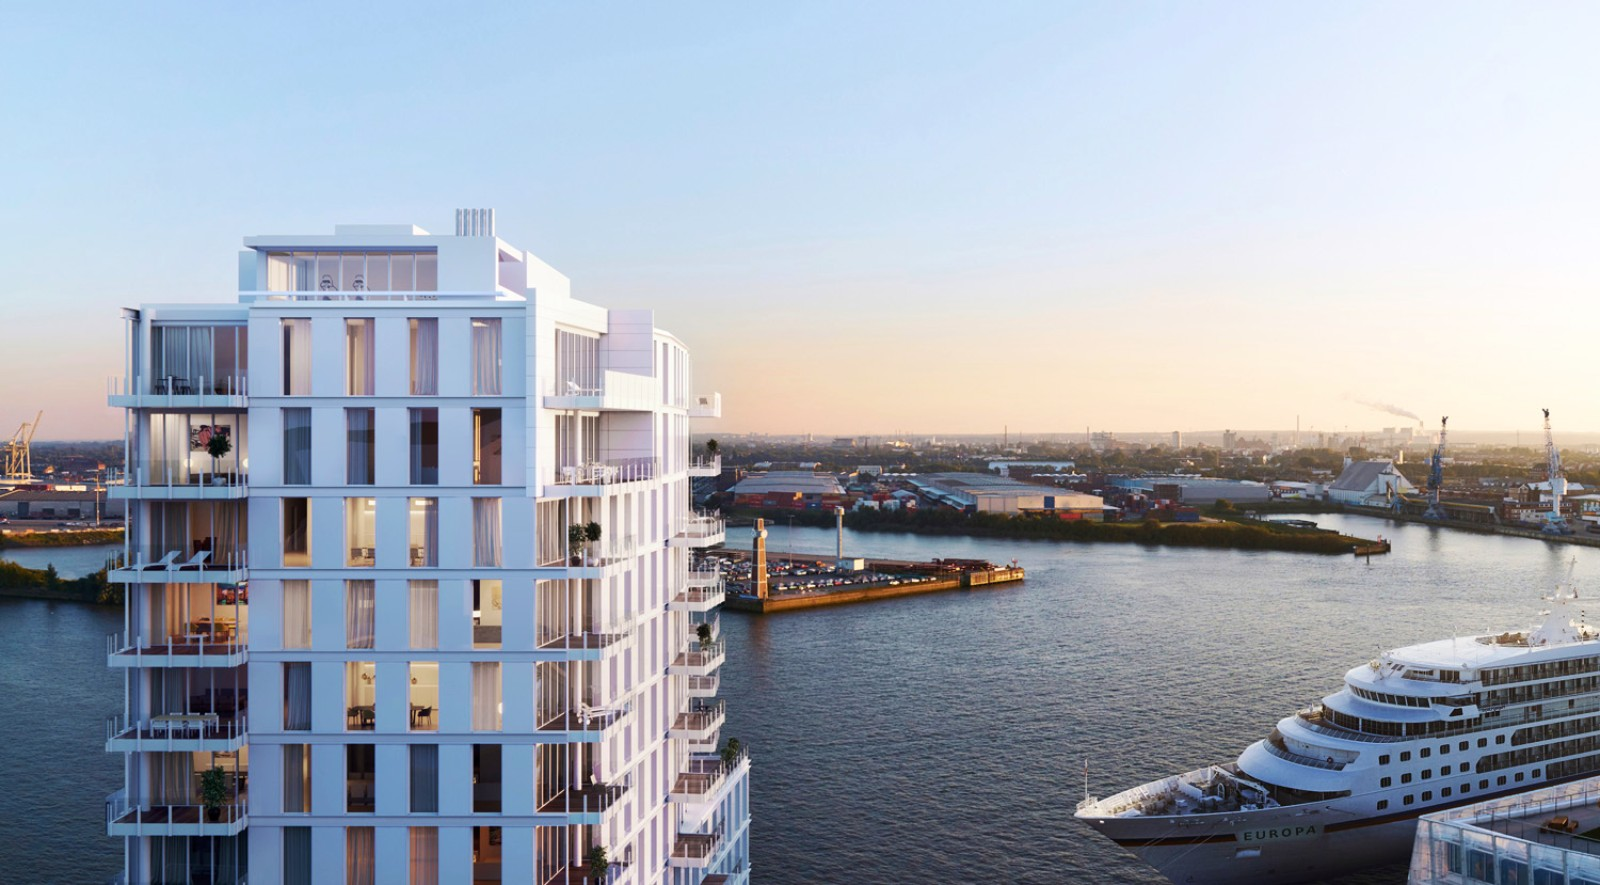 Richard meier partners designs new apartments and the - Engel and wolkers ...